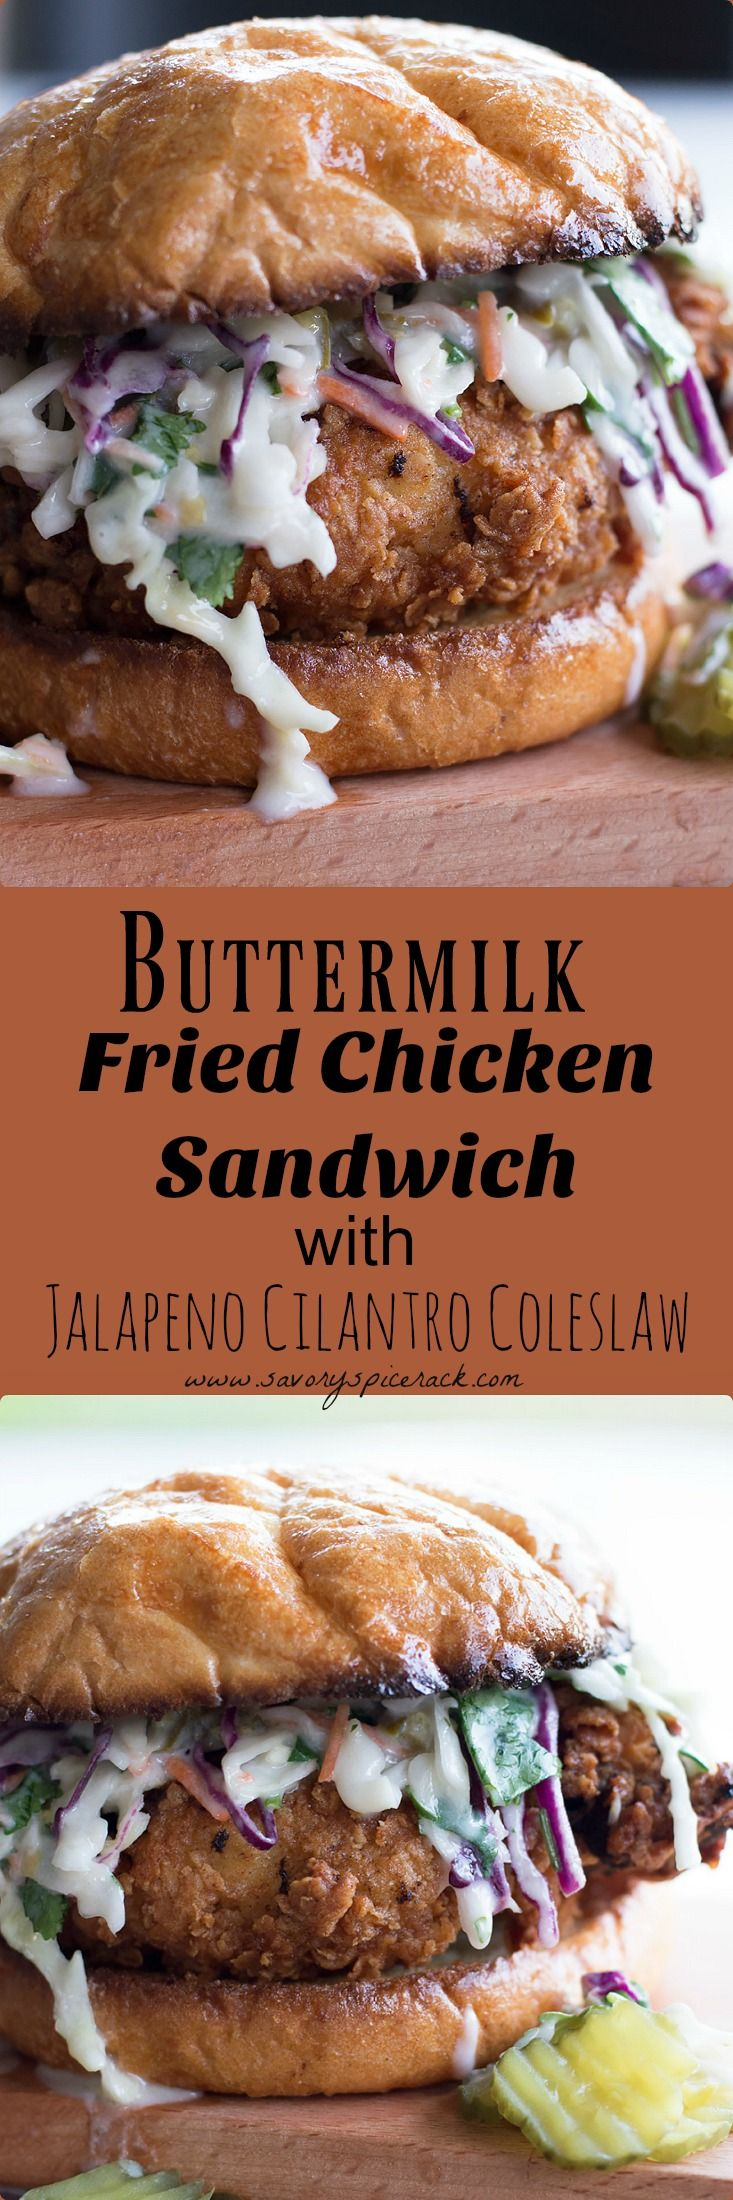 I love this Buttermilk Fried Chicken Sandwich with Cilantro Jalapeno Coleslaw.  Crispy, Juicy, Flavorful Fried Chicken Breast with a Spicy Buttermilk Coleslaw to end the summer!  But I still eat this thing throughout the year….